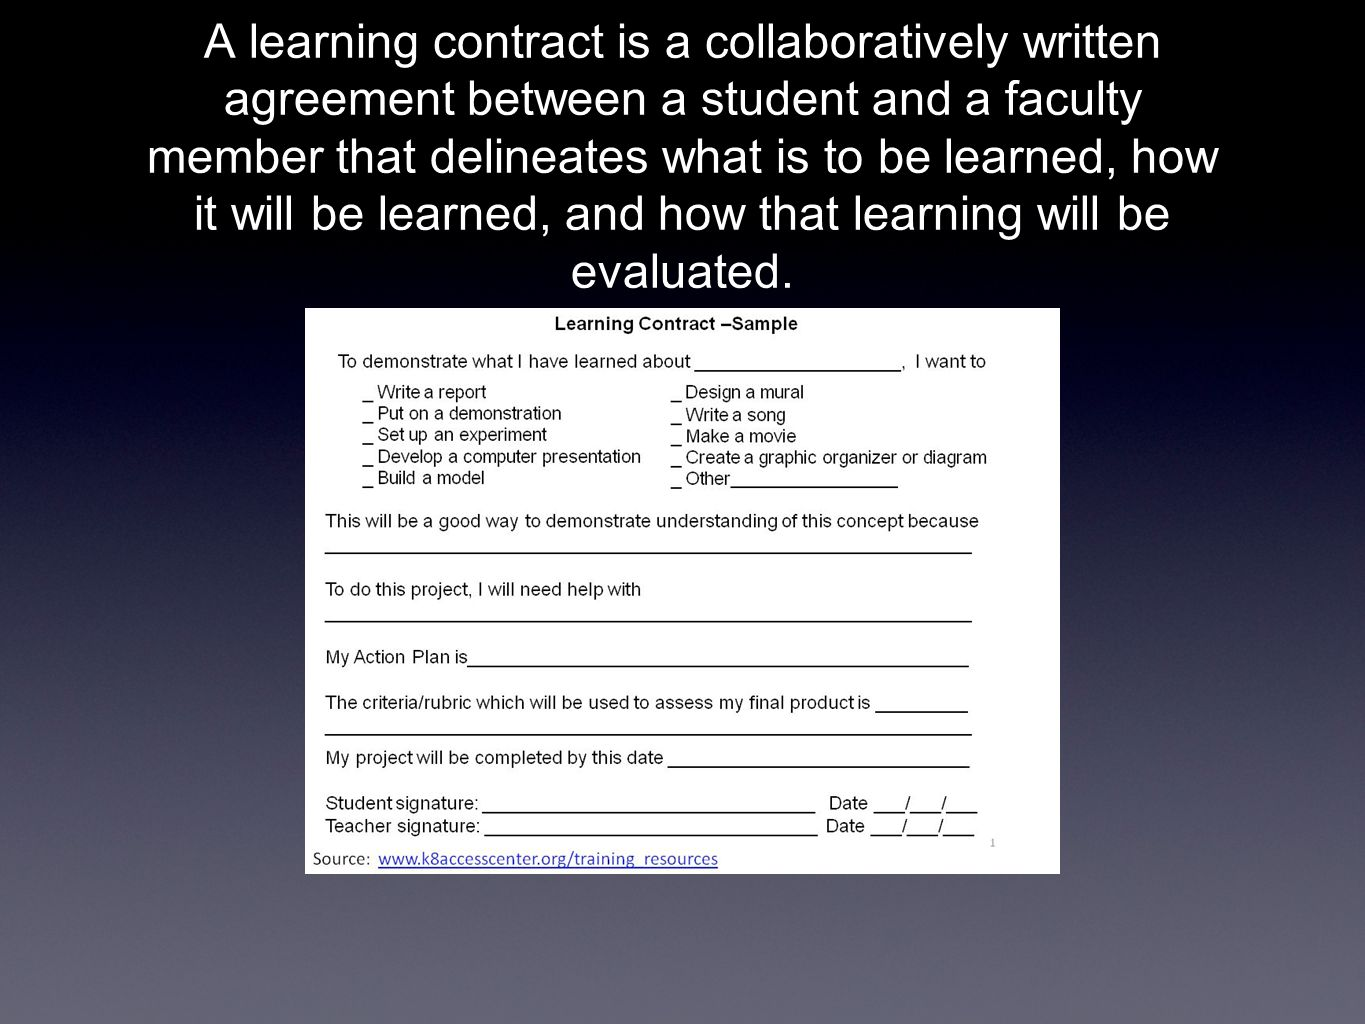 A learning contract is a collaboratively written agreement between a student and a faculty member that delineates what is to be learned, how it will be learned, and how that learning will be evaluated.